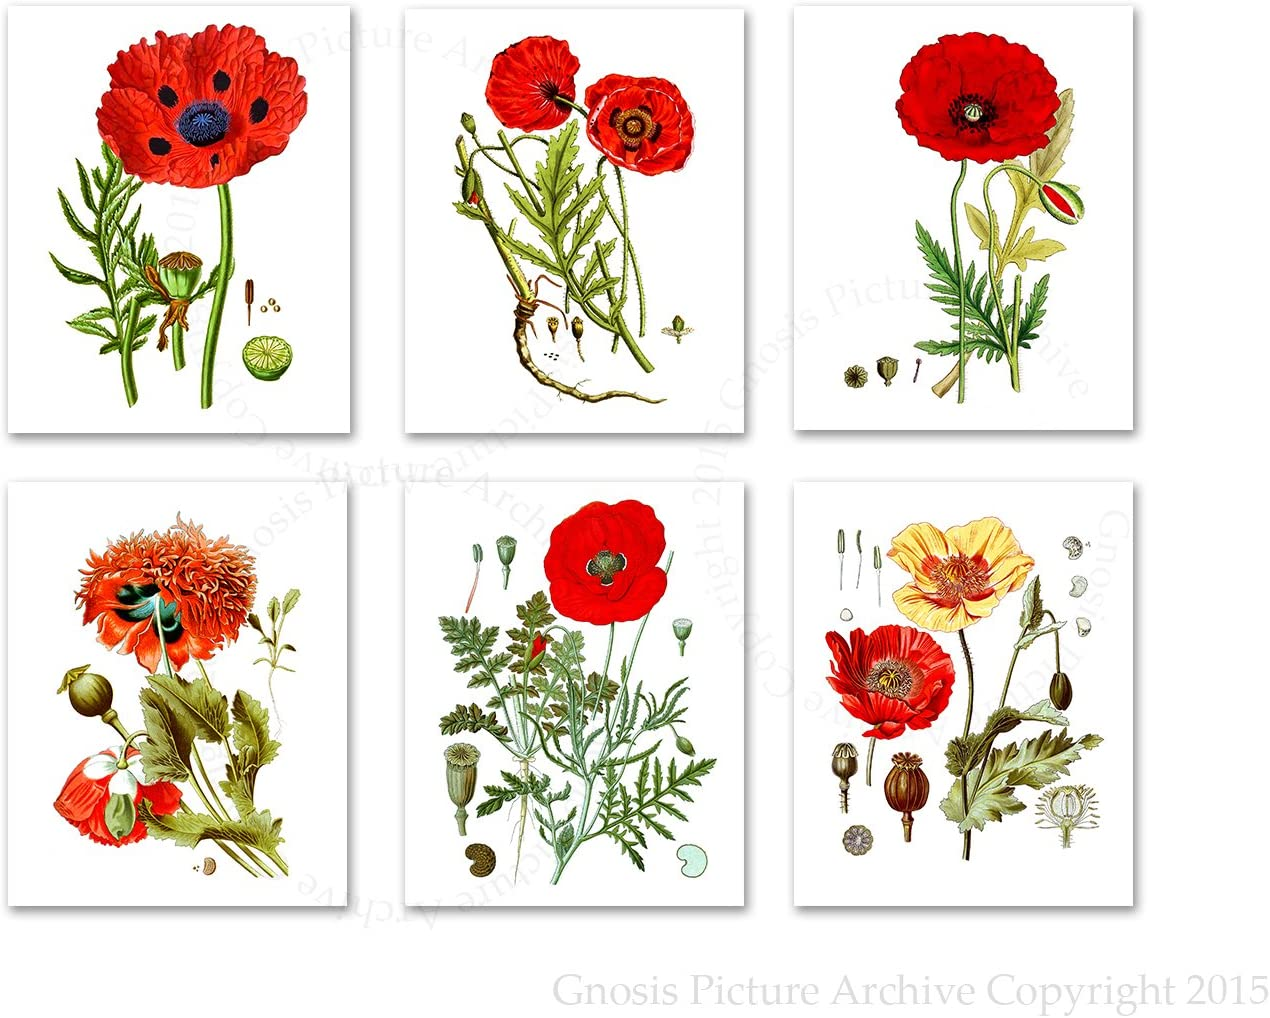 Amazon Com Gnosis Picture Archive Poppy Flowers Botanical Prints Set Of 6 Unframed Posters Red Wall Decor Living Room Decor Posters Prints